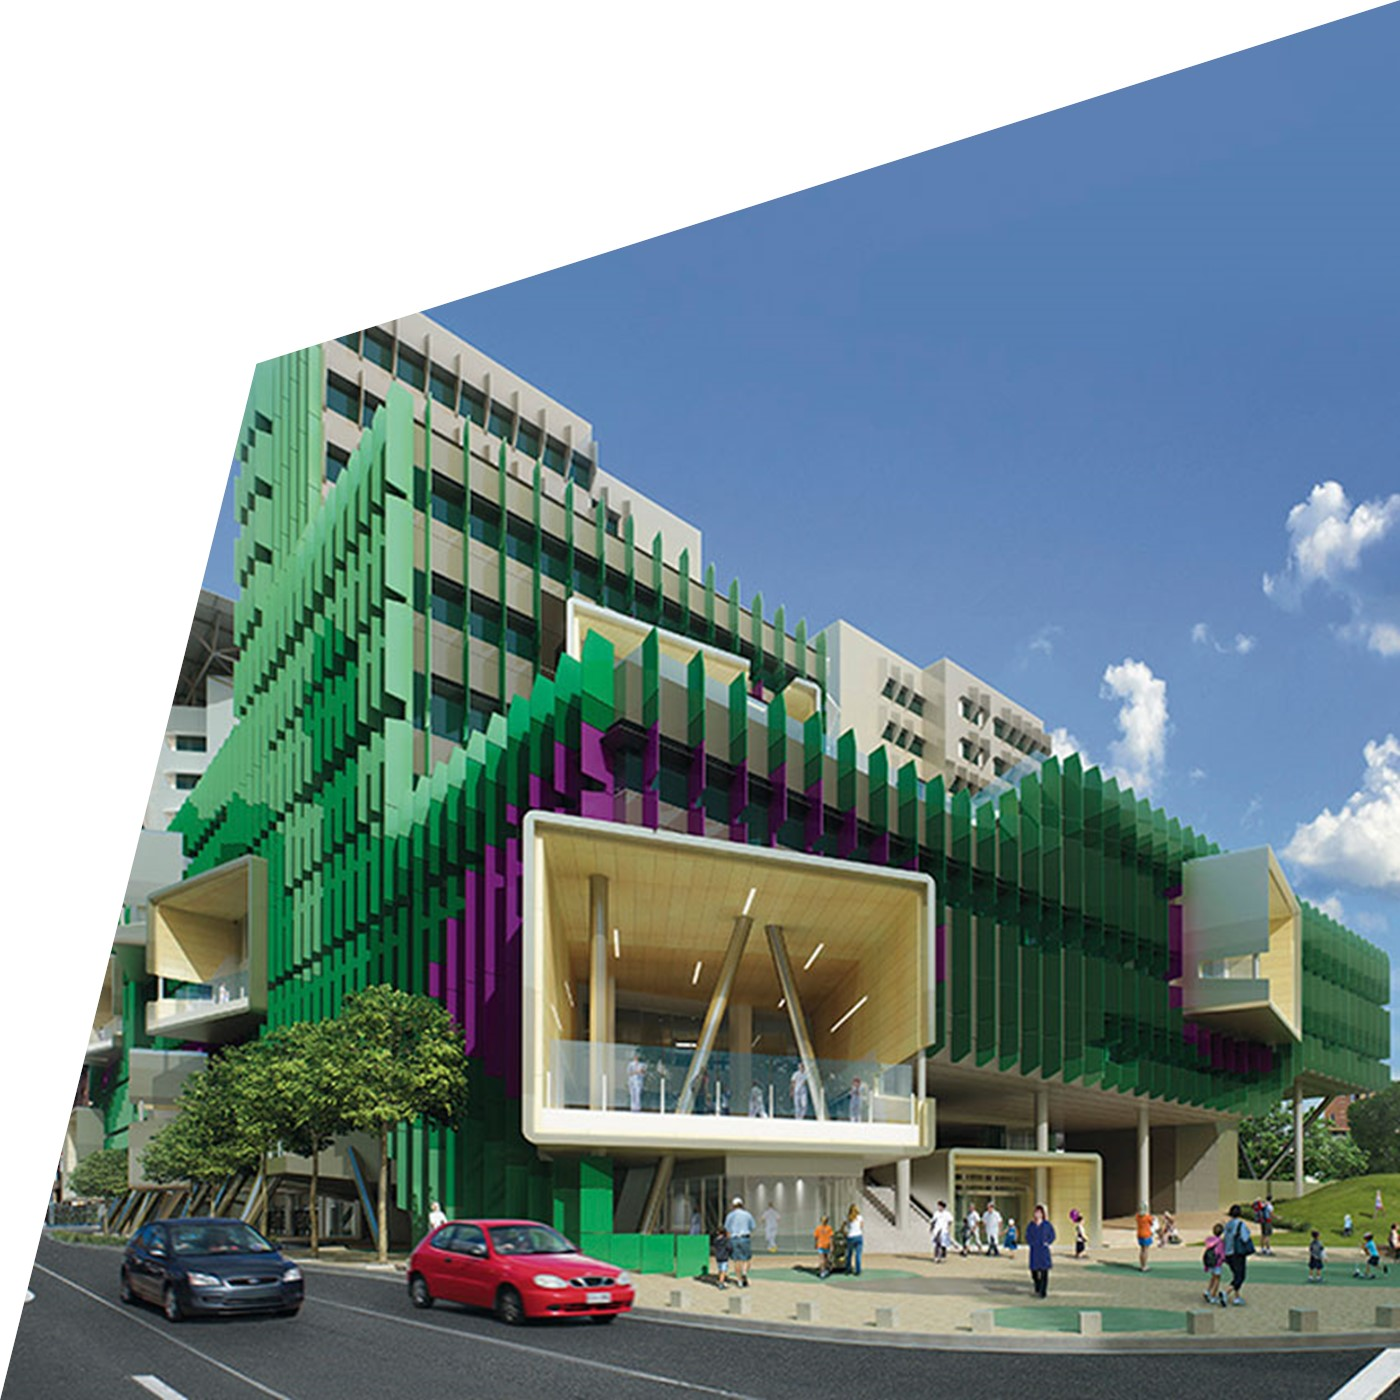 Queensland Children's Hospital, QLD